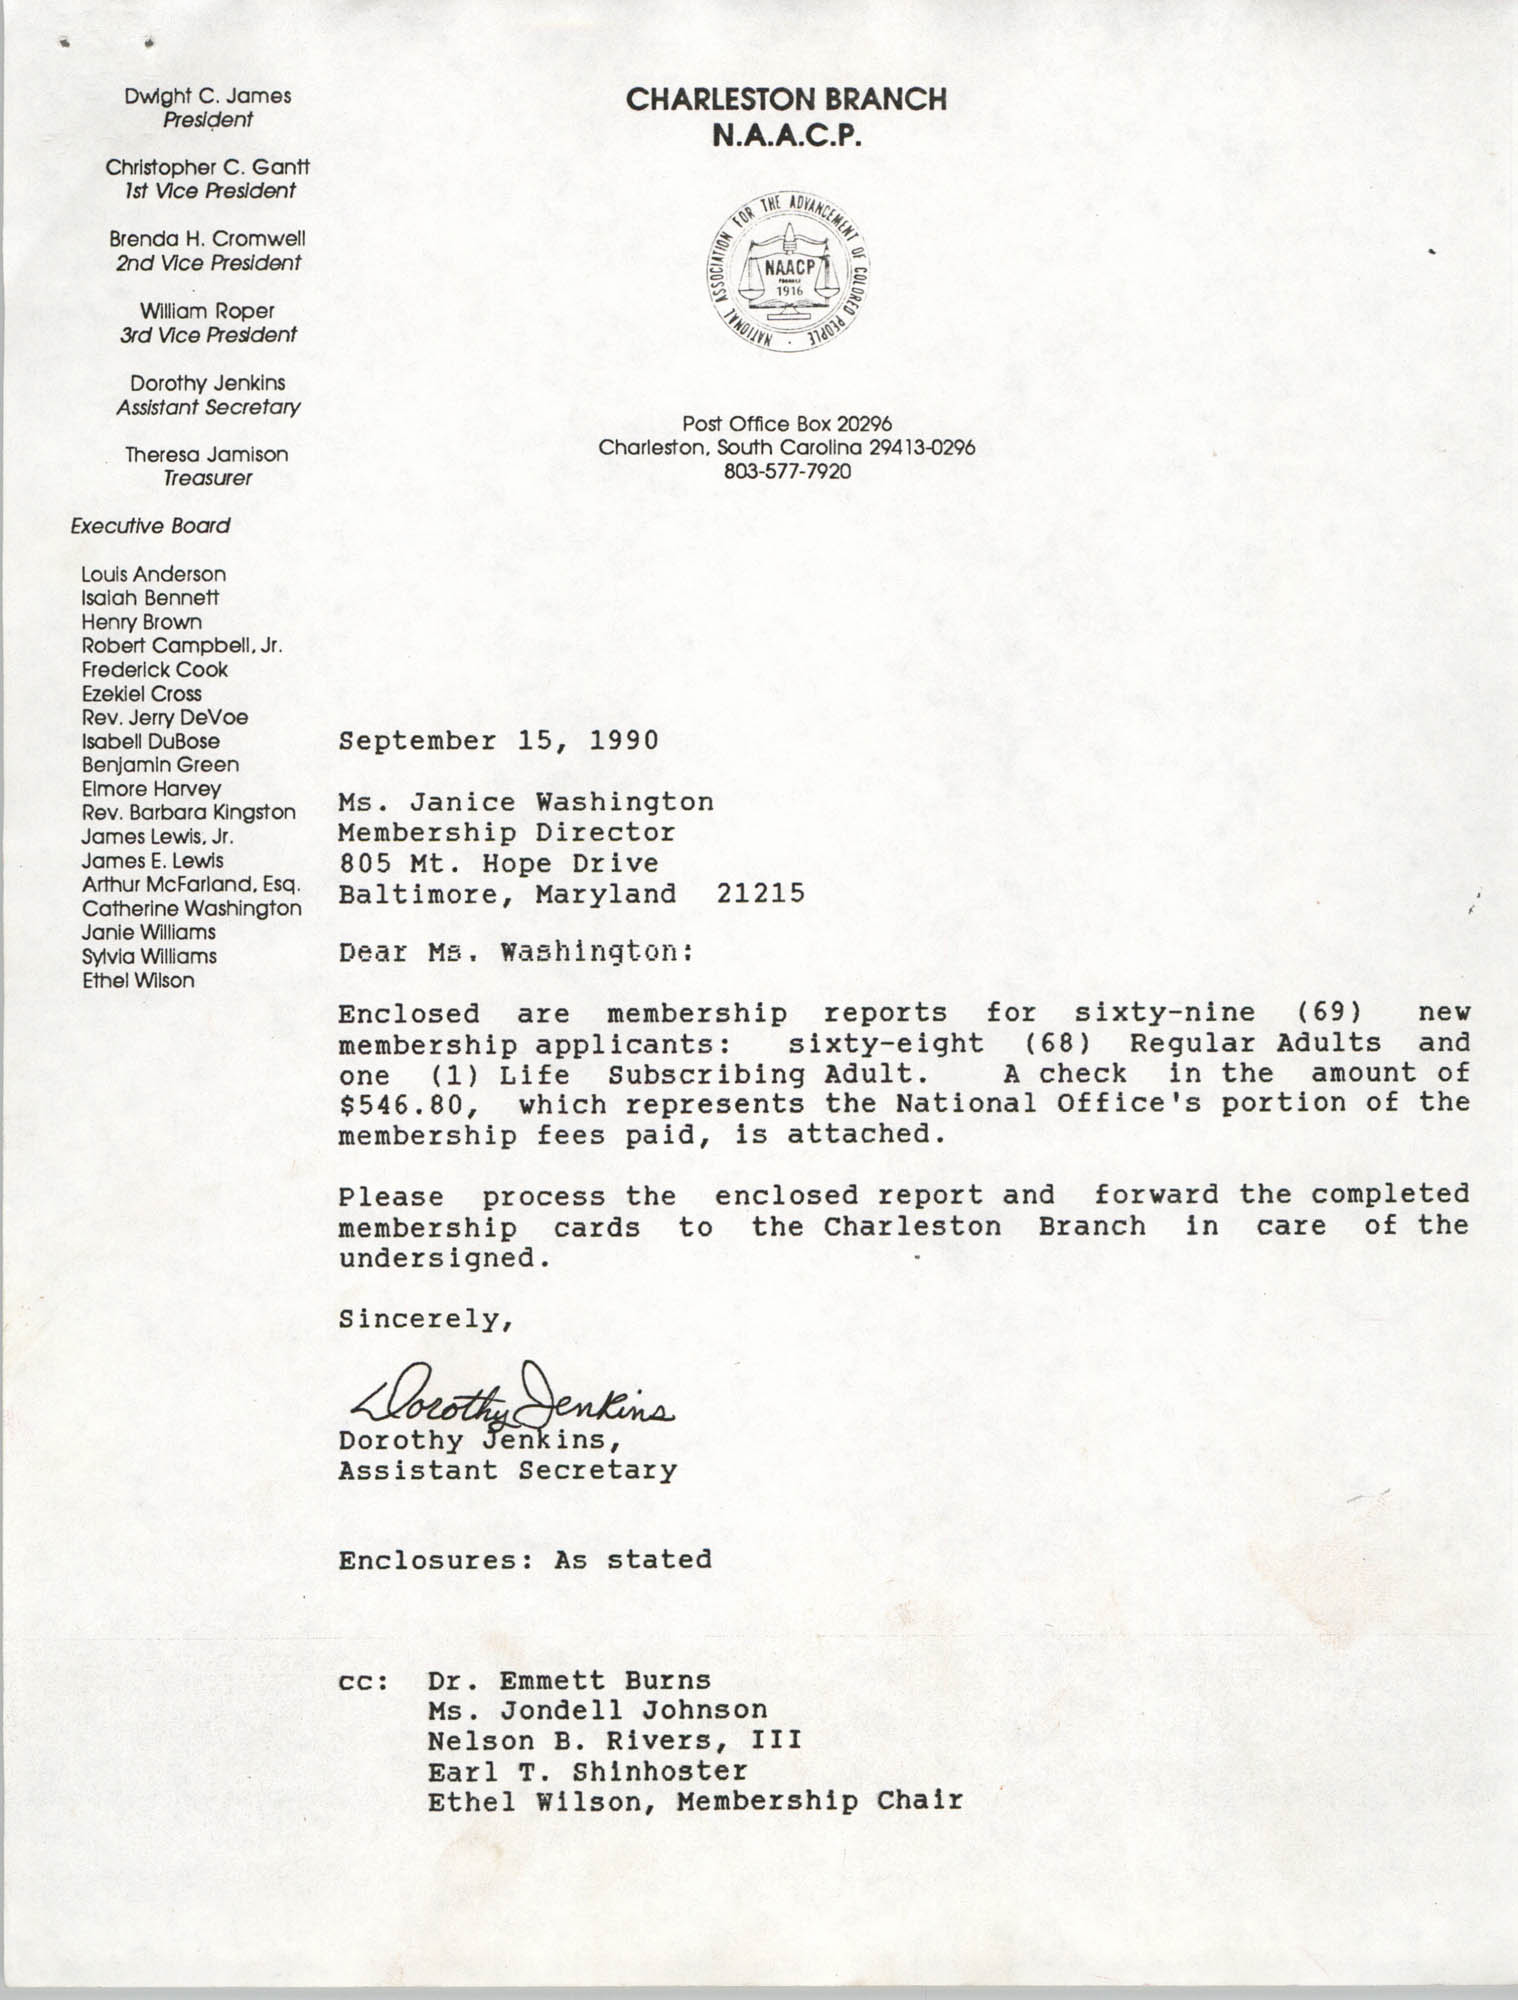 Letter from Dorothy Jenkins to Janice Washington, NAACP, September 15, 1990